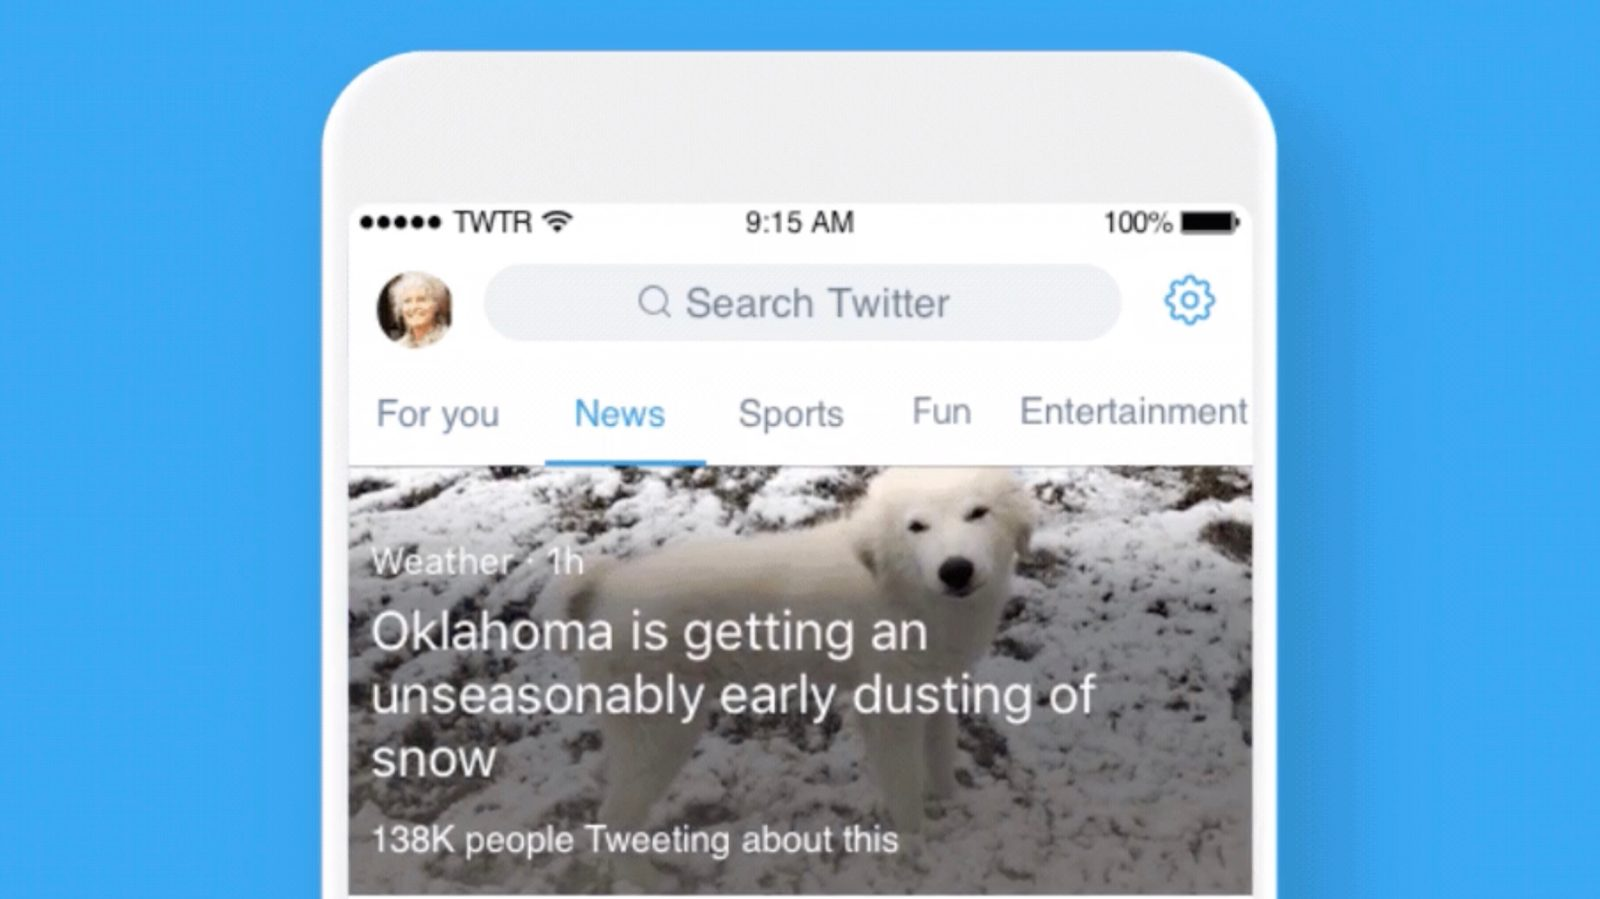 Twitter Search Interface Adds New Section-based Design